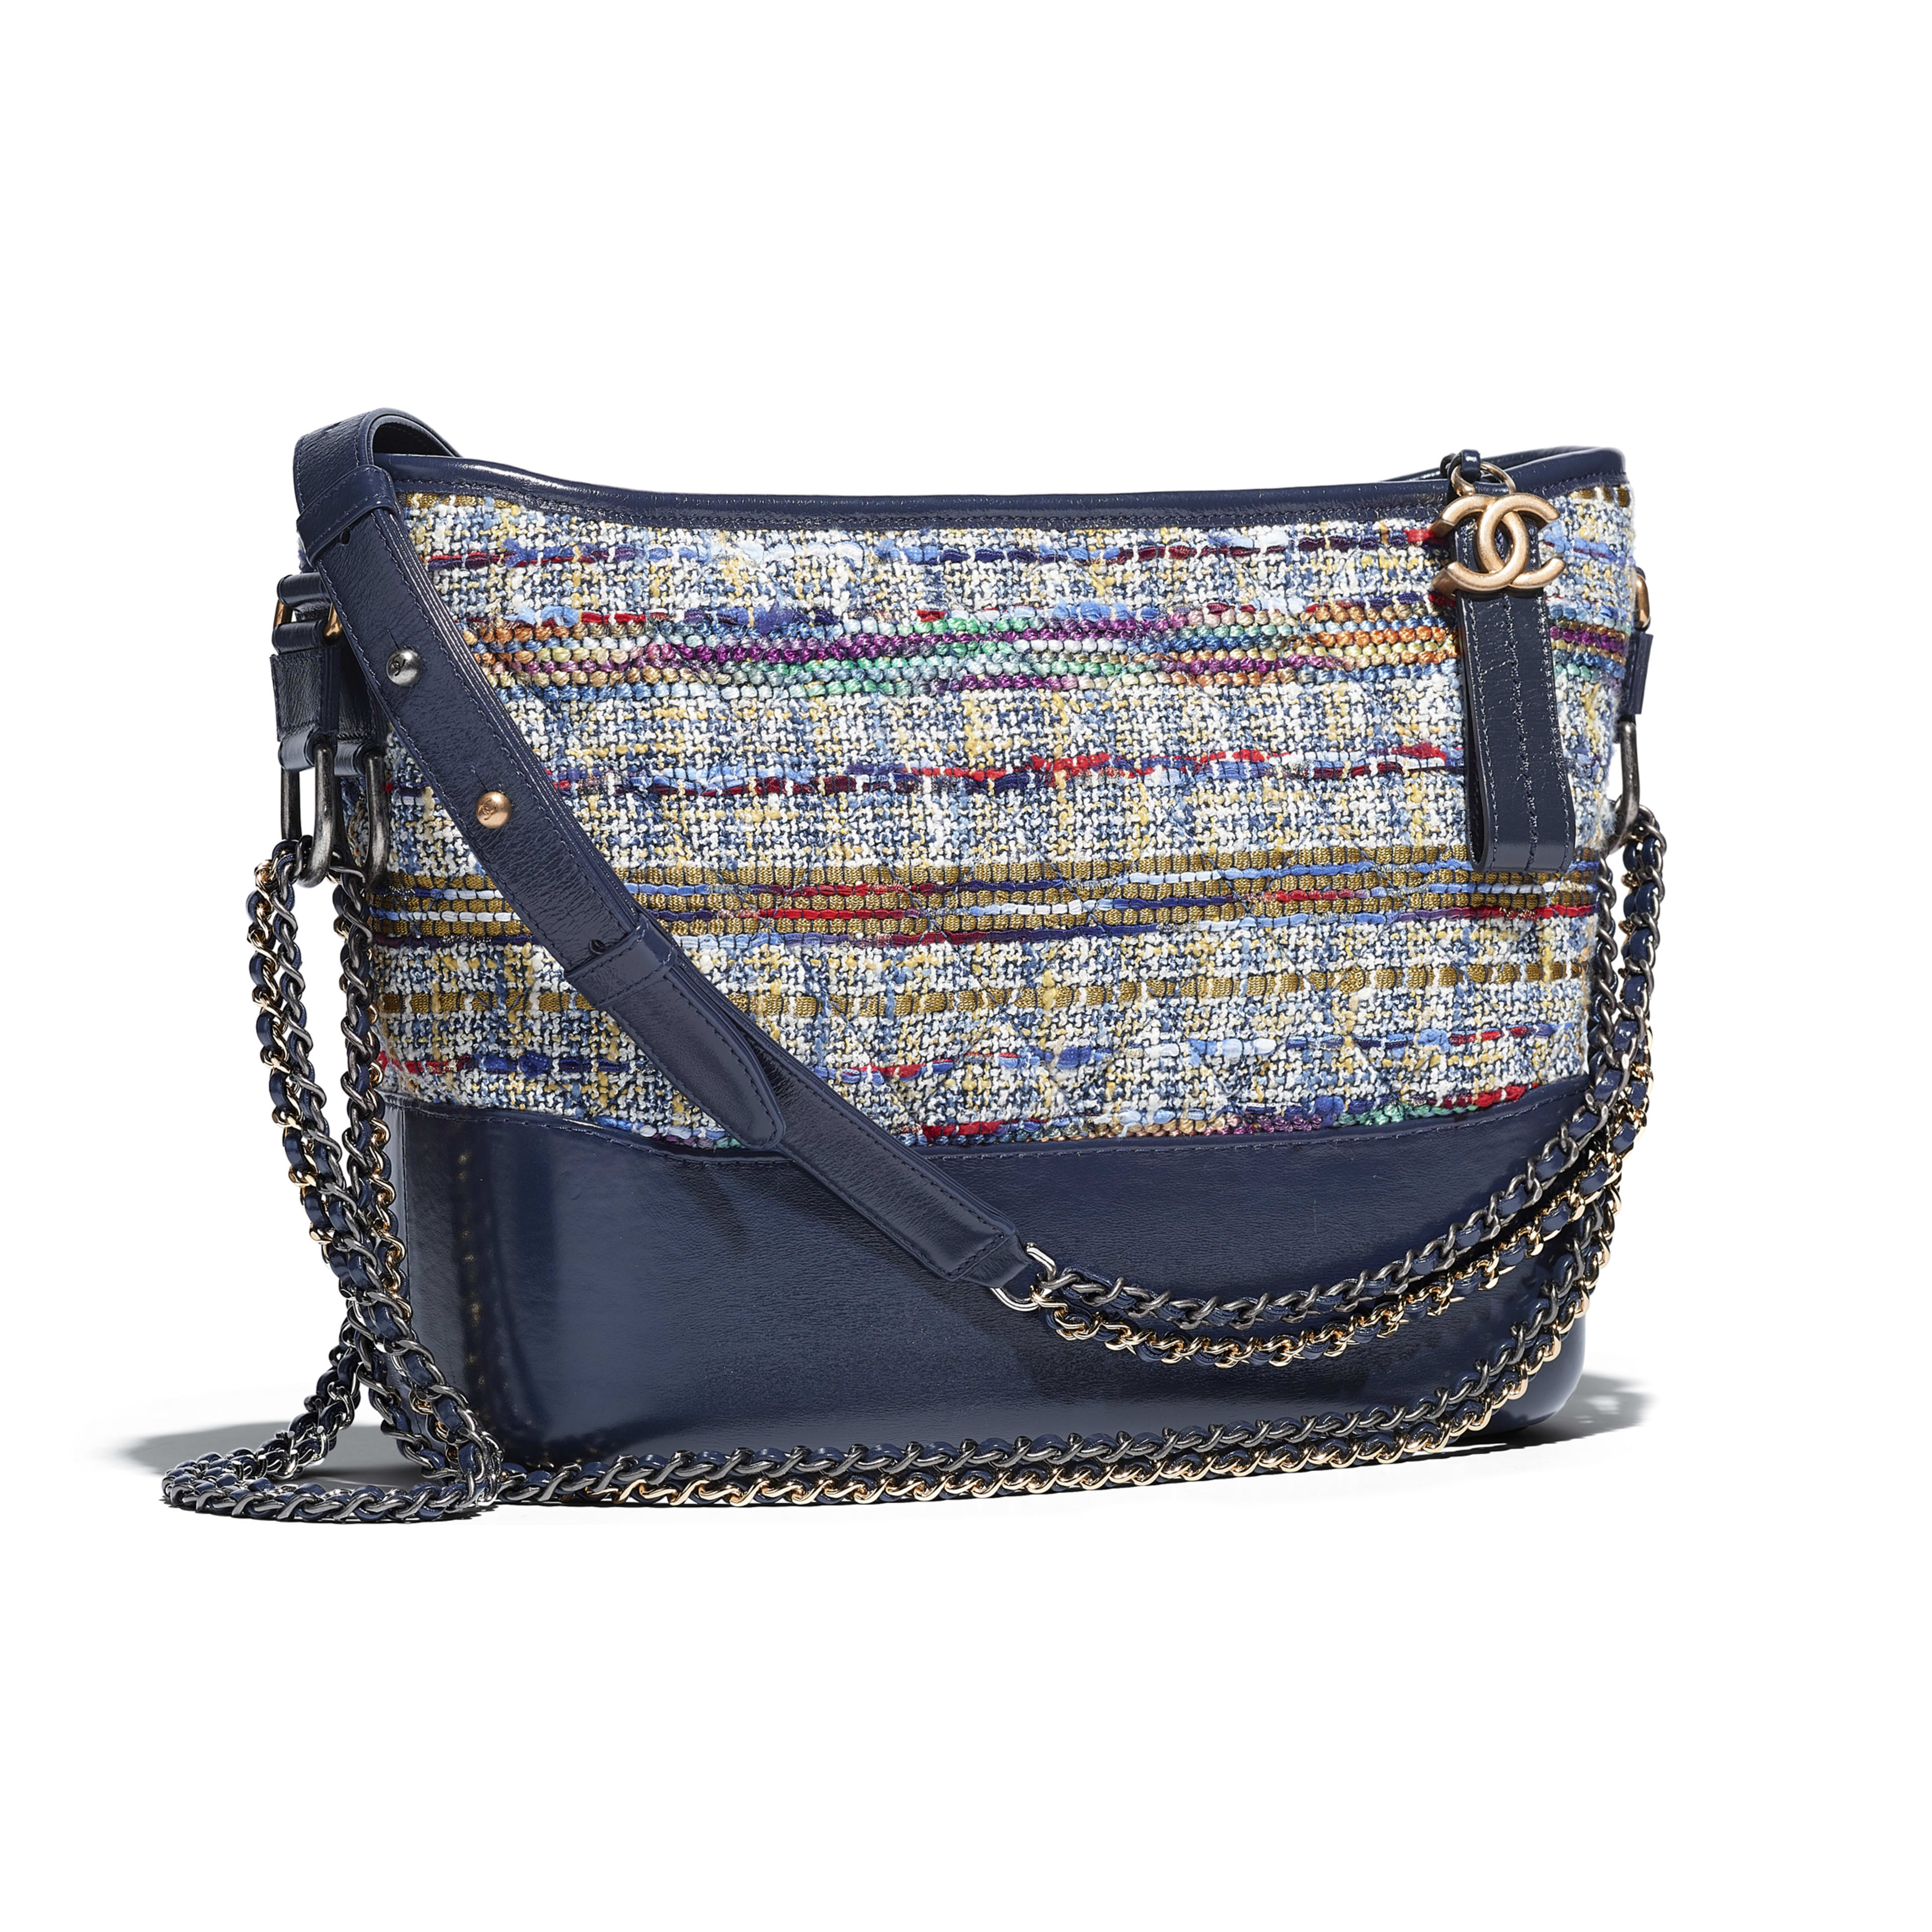 CHANEL'S GABRIELLE Hobo Bag Tweed, Calfskin, Silver-Tone & Gold-Tone Metal Blue, Gold, Red, White & Navy Blue -                                            view 3 - see full sized version